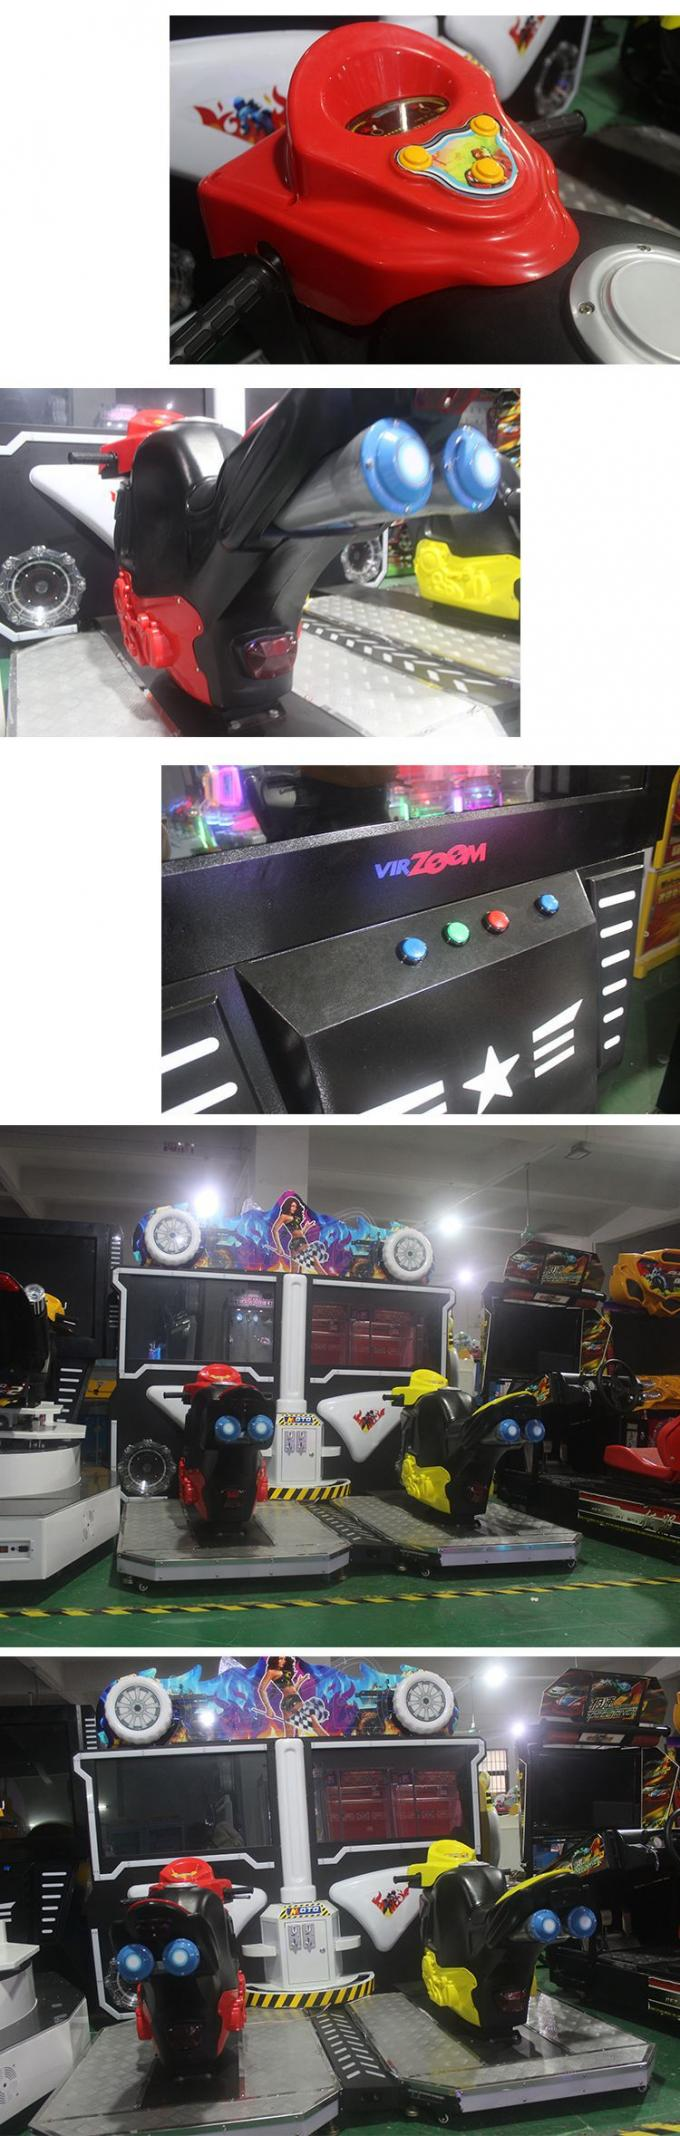 42 Inch Flaming Moto Racing Game Machine For Shopping Mall / Supermarket